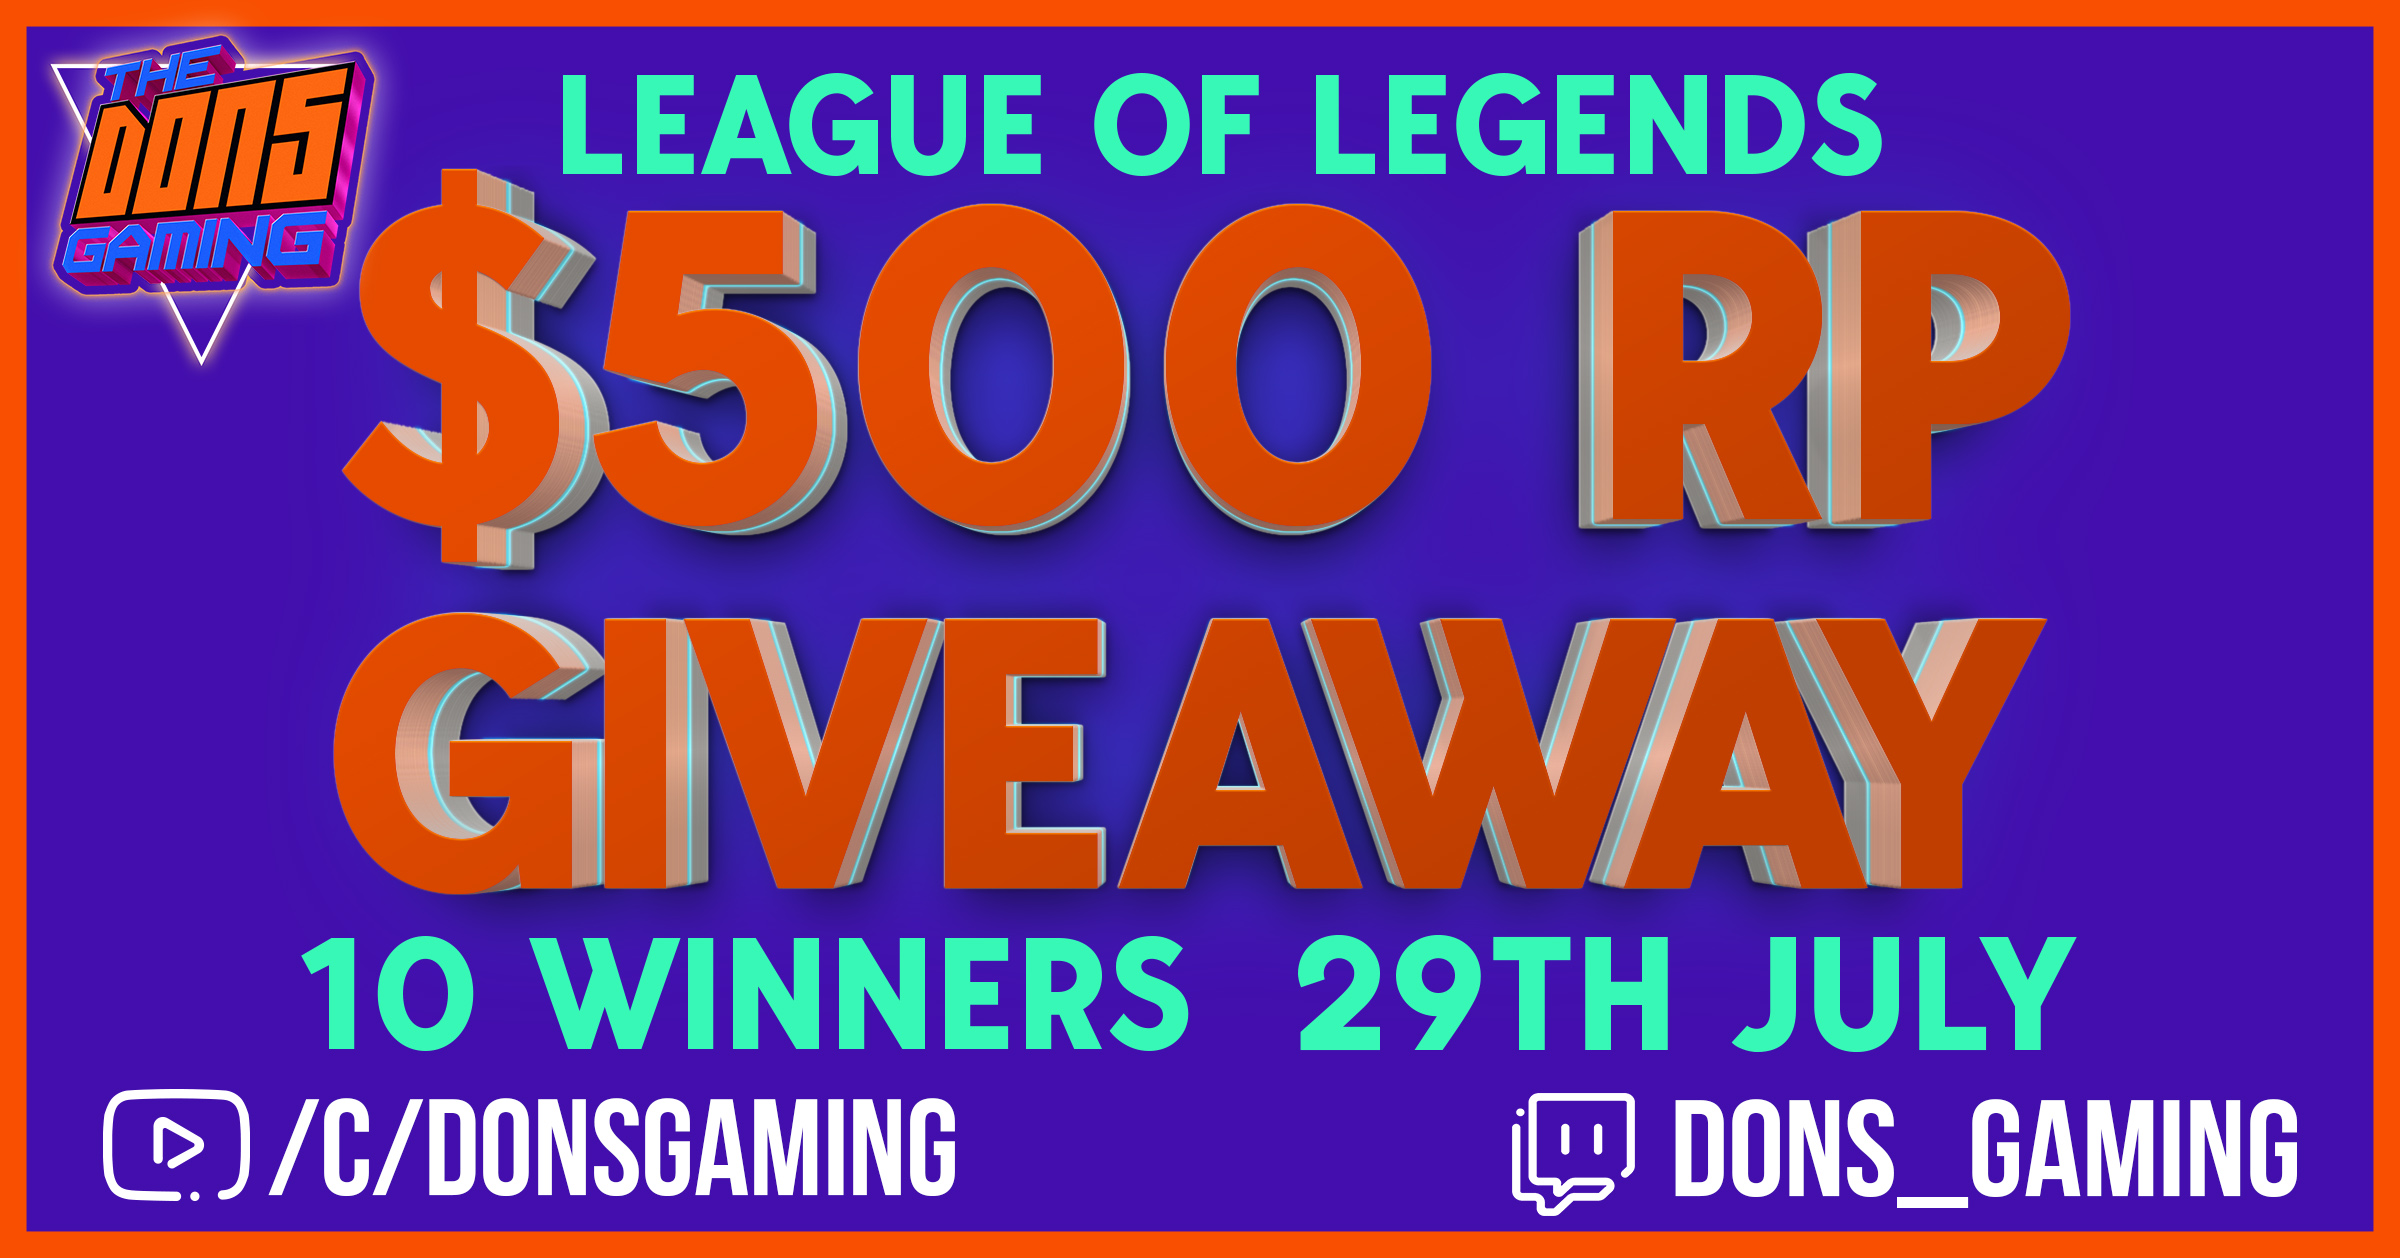 League of Legends RP GIVEAWAY ALL SERVERS :: League of Legends (LoL